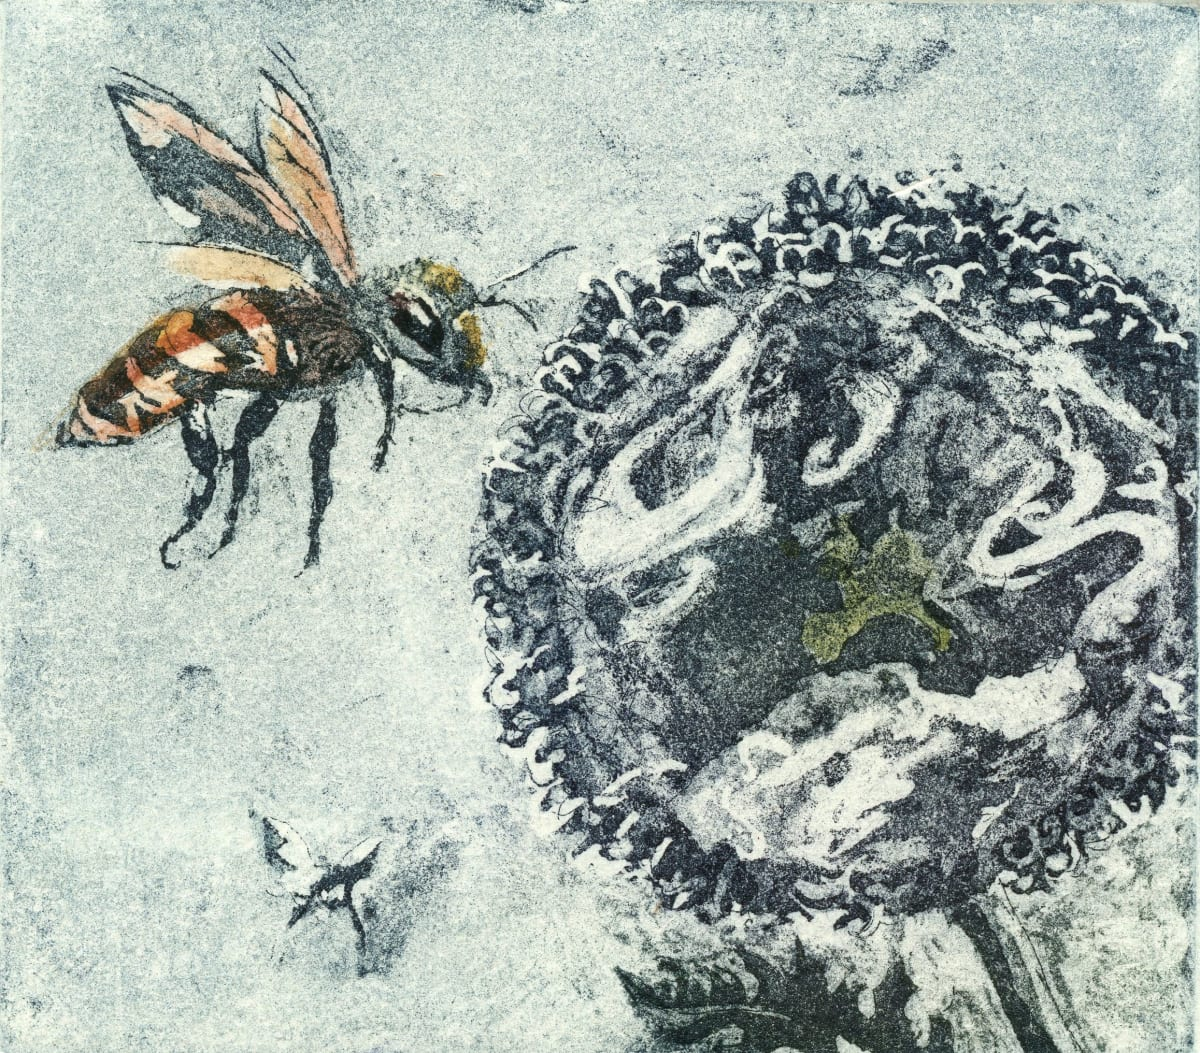 LON160, The Bee, World Pollinator by Claire Longley